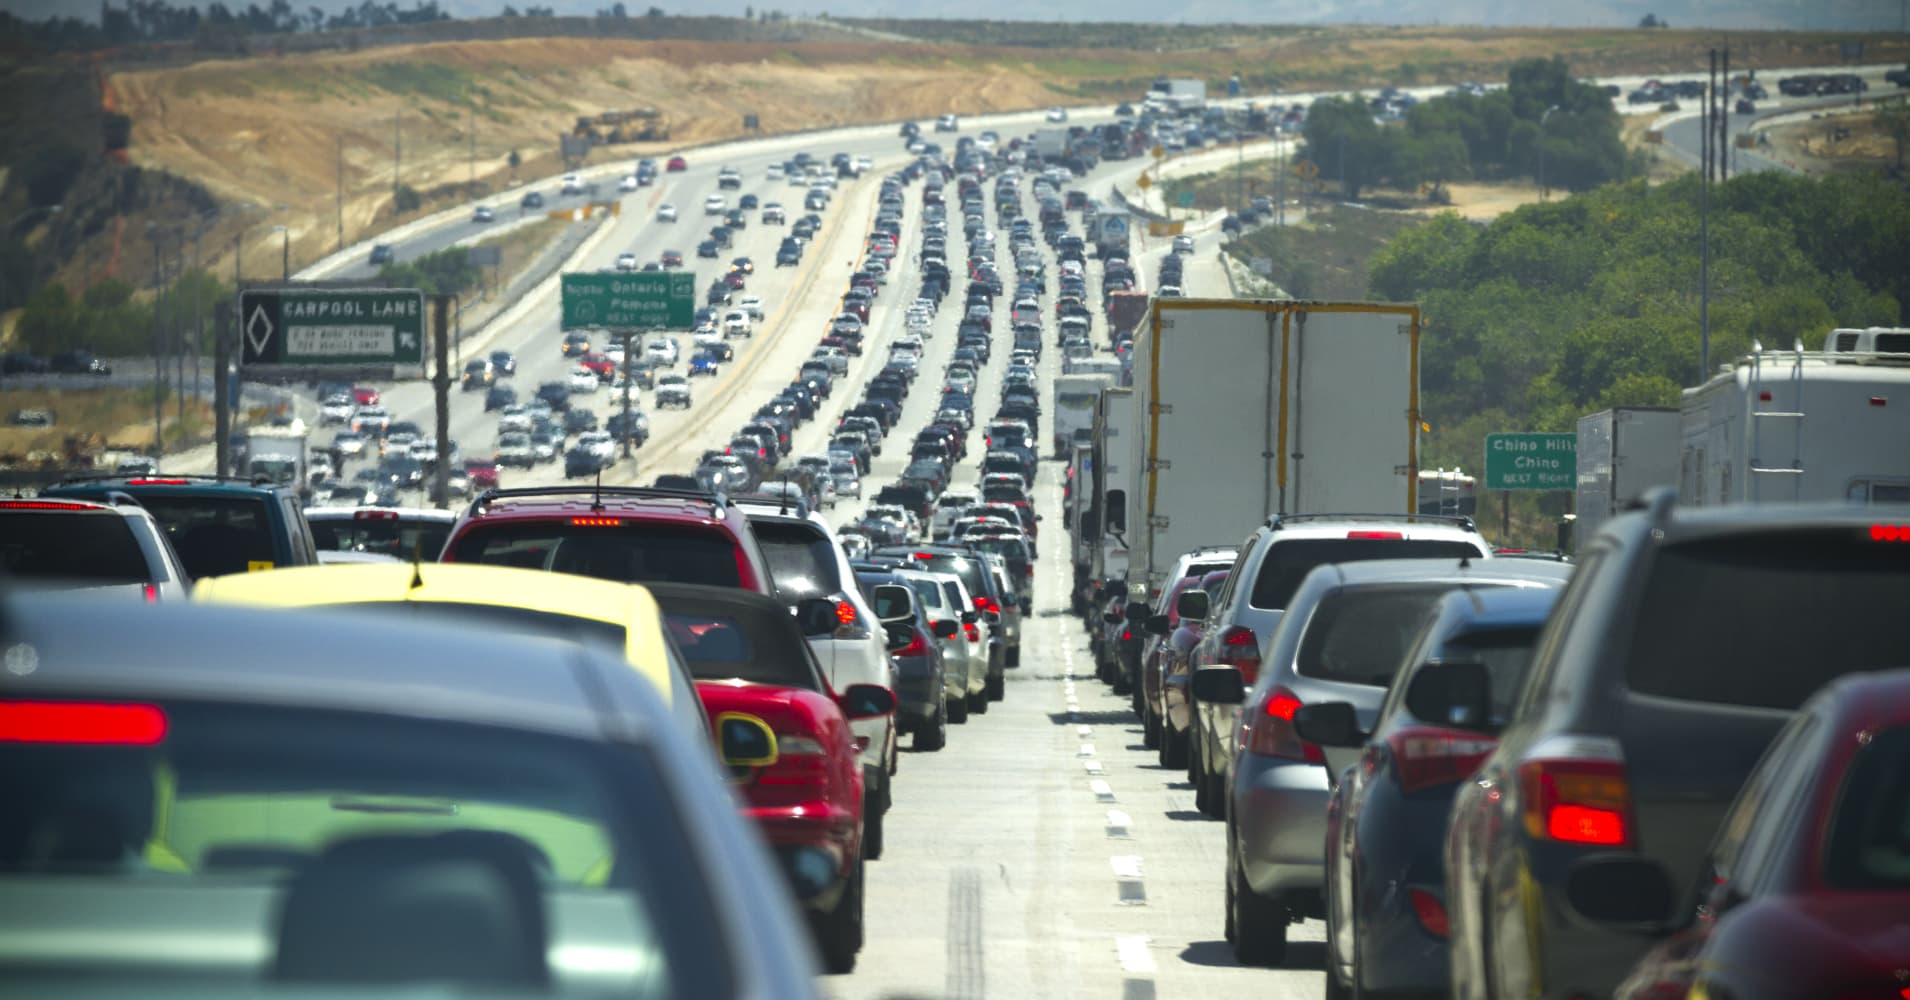 Traffic on an Interstate freeway in Southern California